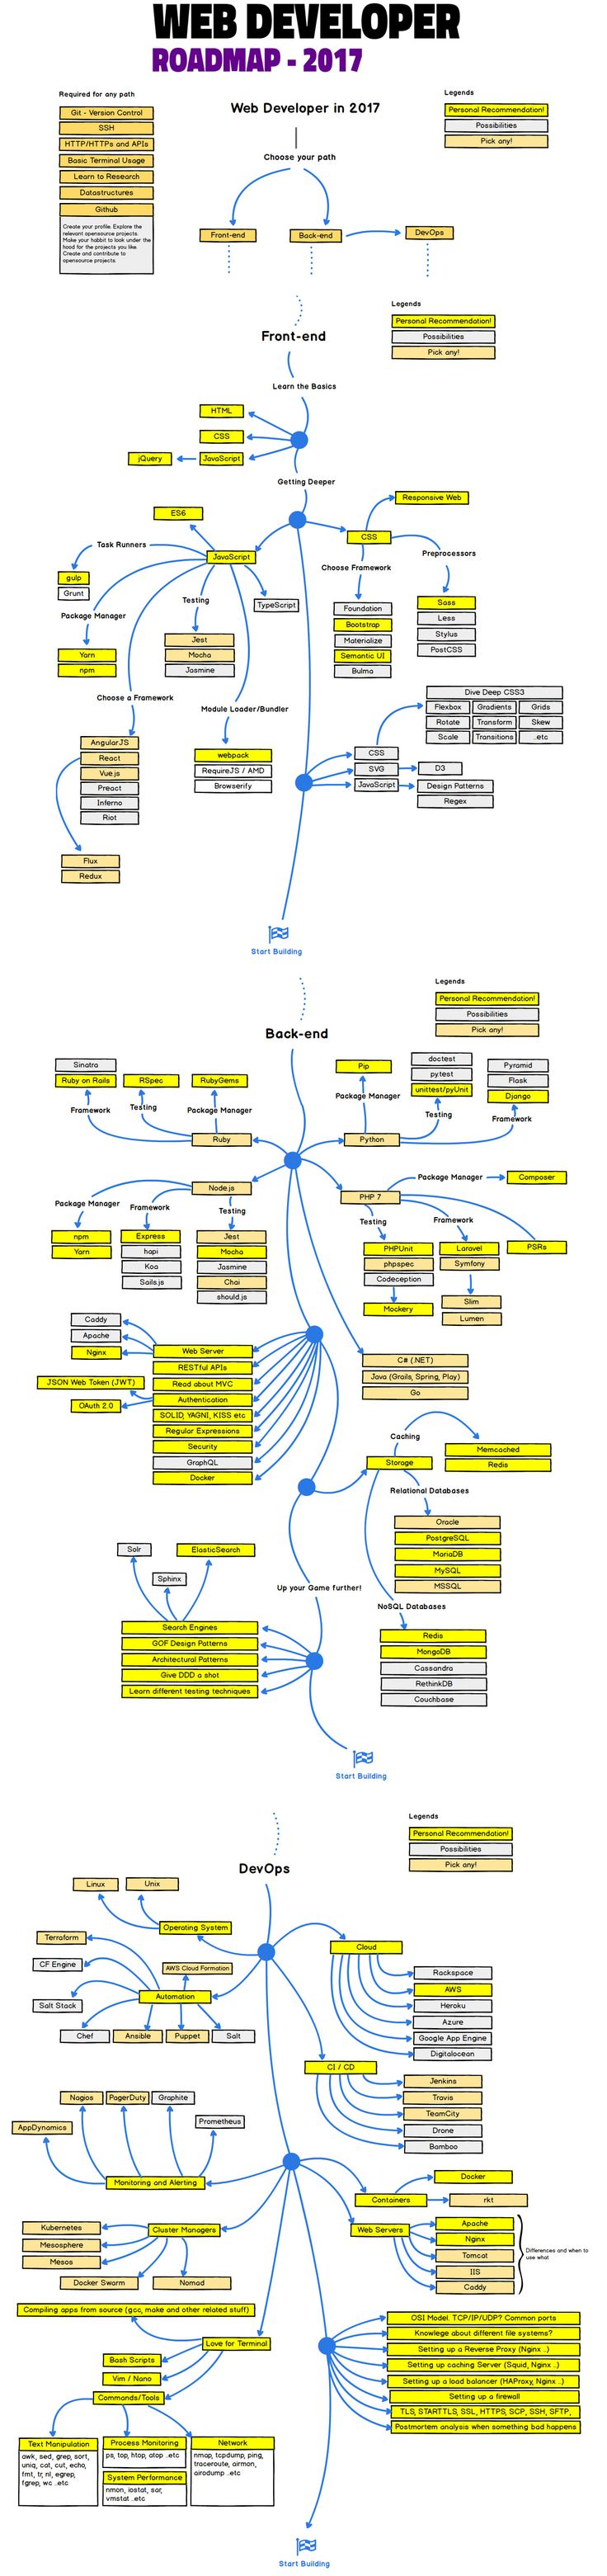 Web Developer Roadmap 2017  Below you find a set of charts demonstrating the paths that you can take and the technologies that you would want to adopt in order to become a frontend, backend or a devops. I made these charts for an old professor of mine who wanted something to share with his college students to give them a perspective.